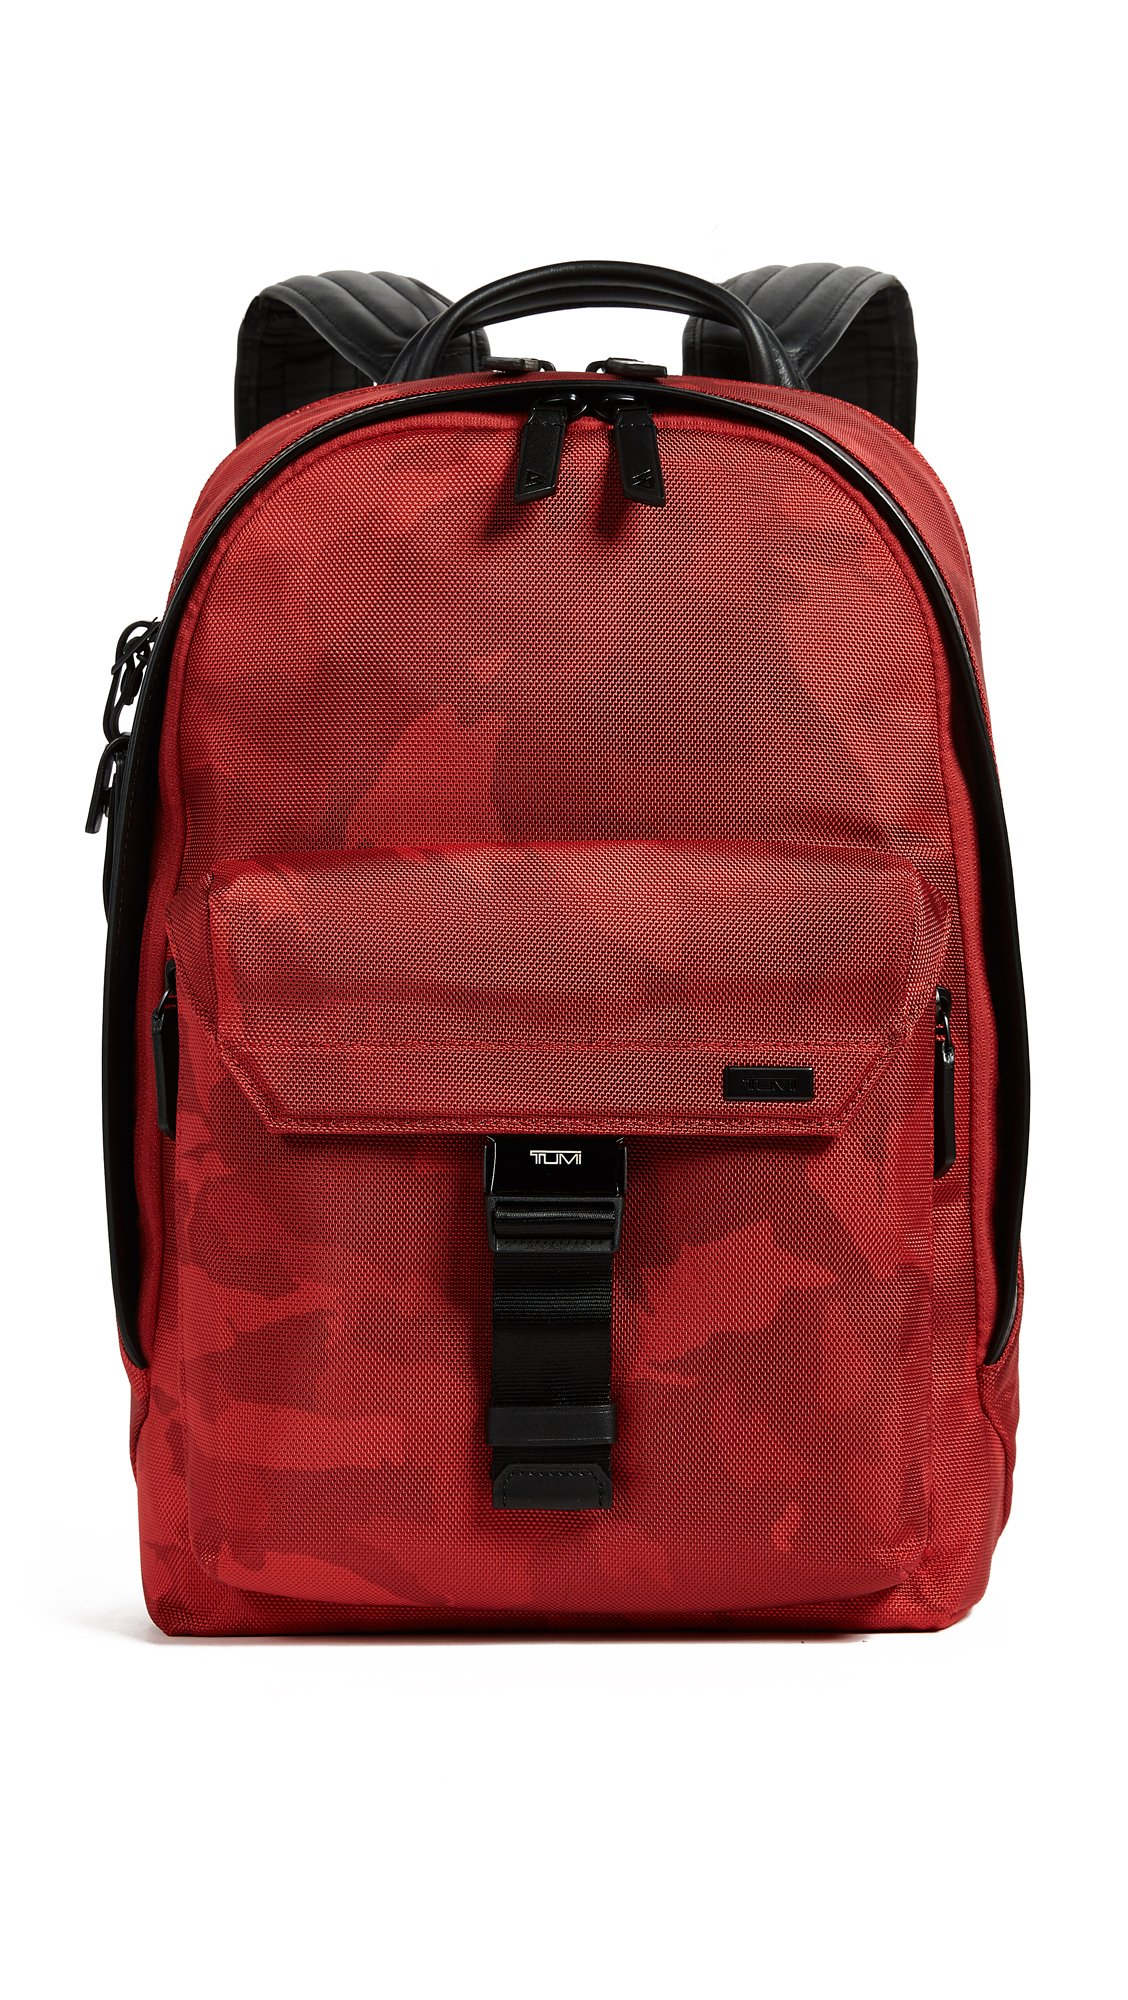 Tumi Men's x Westbrook Morrison Backpack, Red, One Size